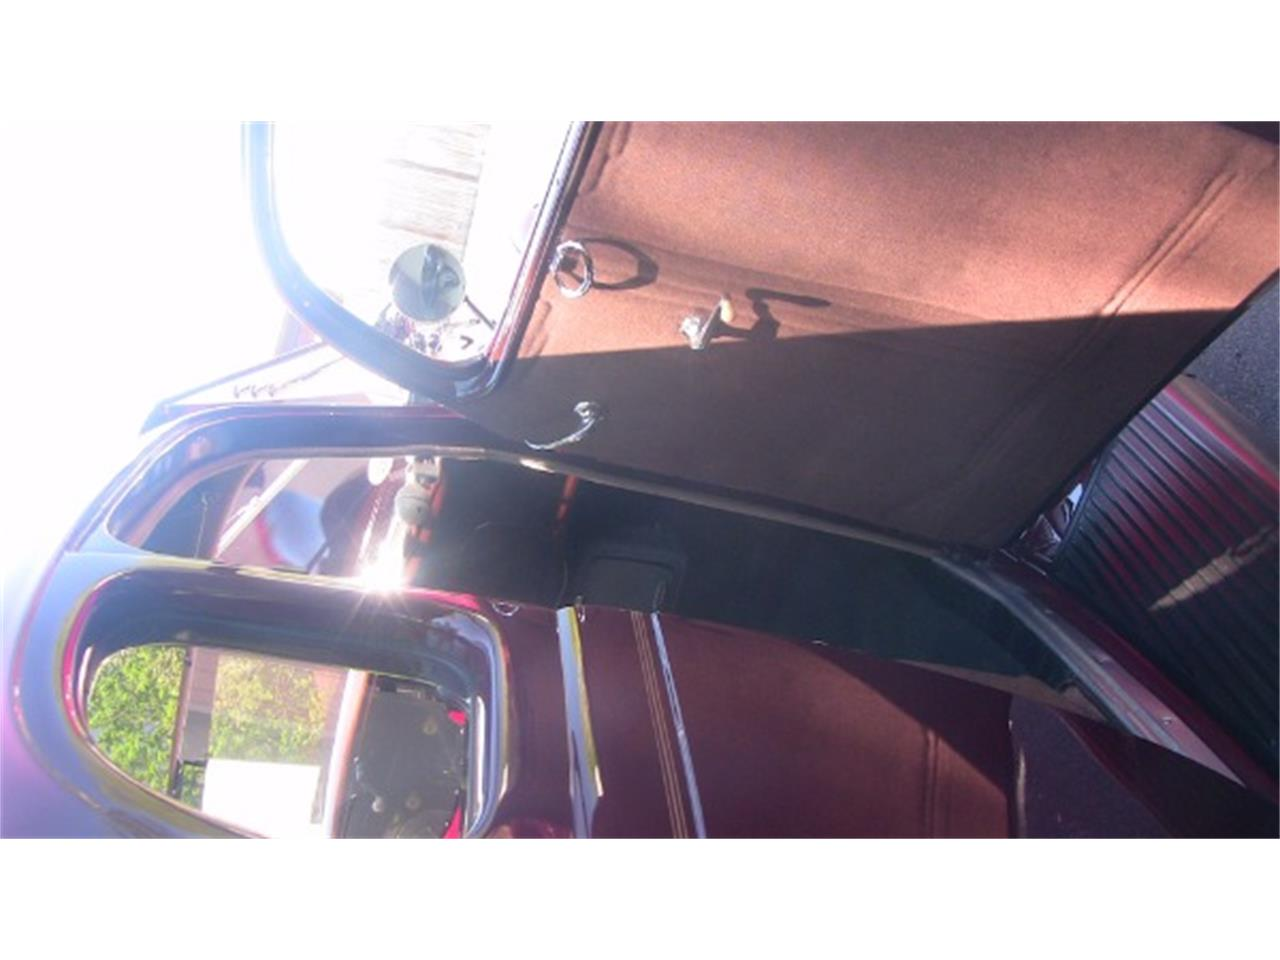 Large Picture of Classic '35 Plymouth PG Deluxe located in North Carolina Auction Vehicle - L2RW